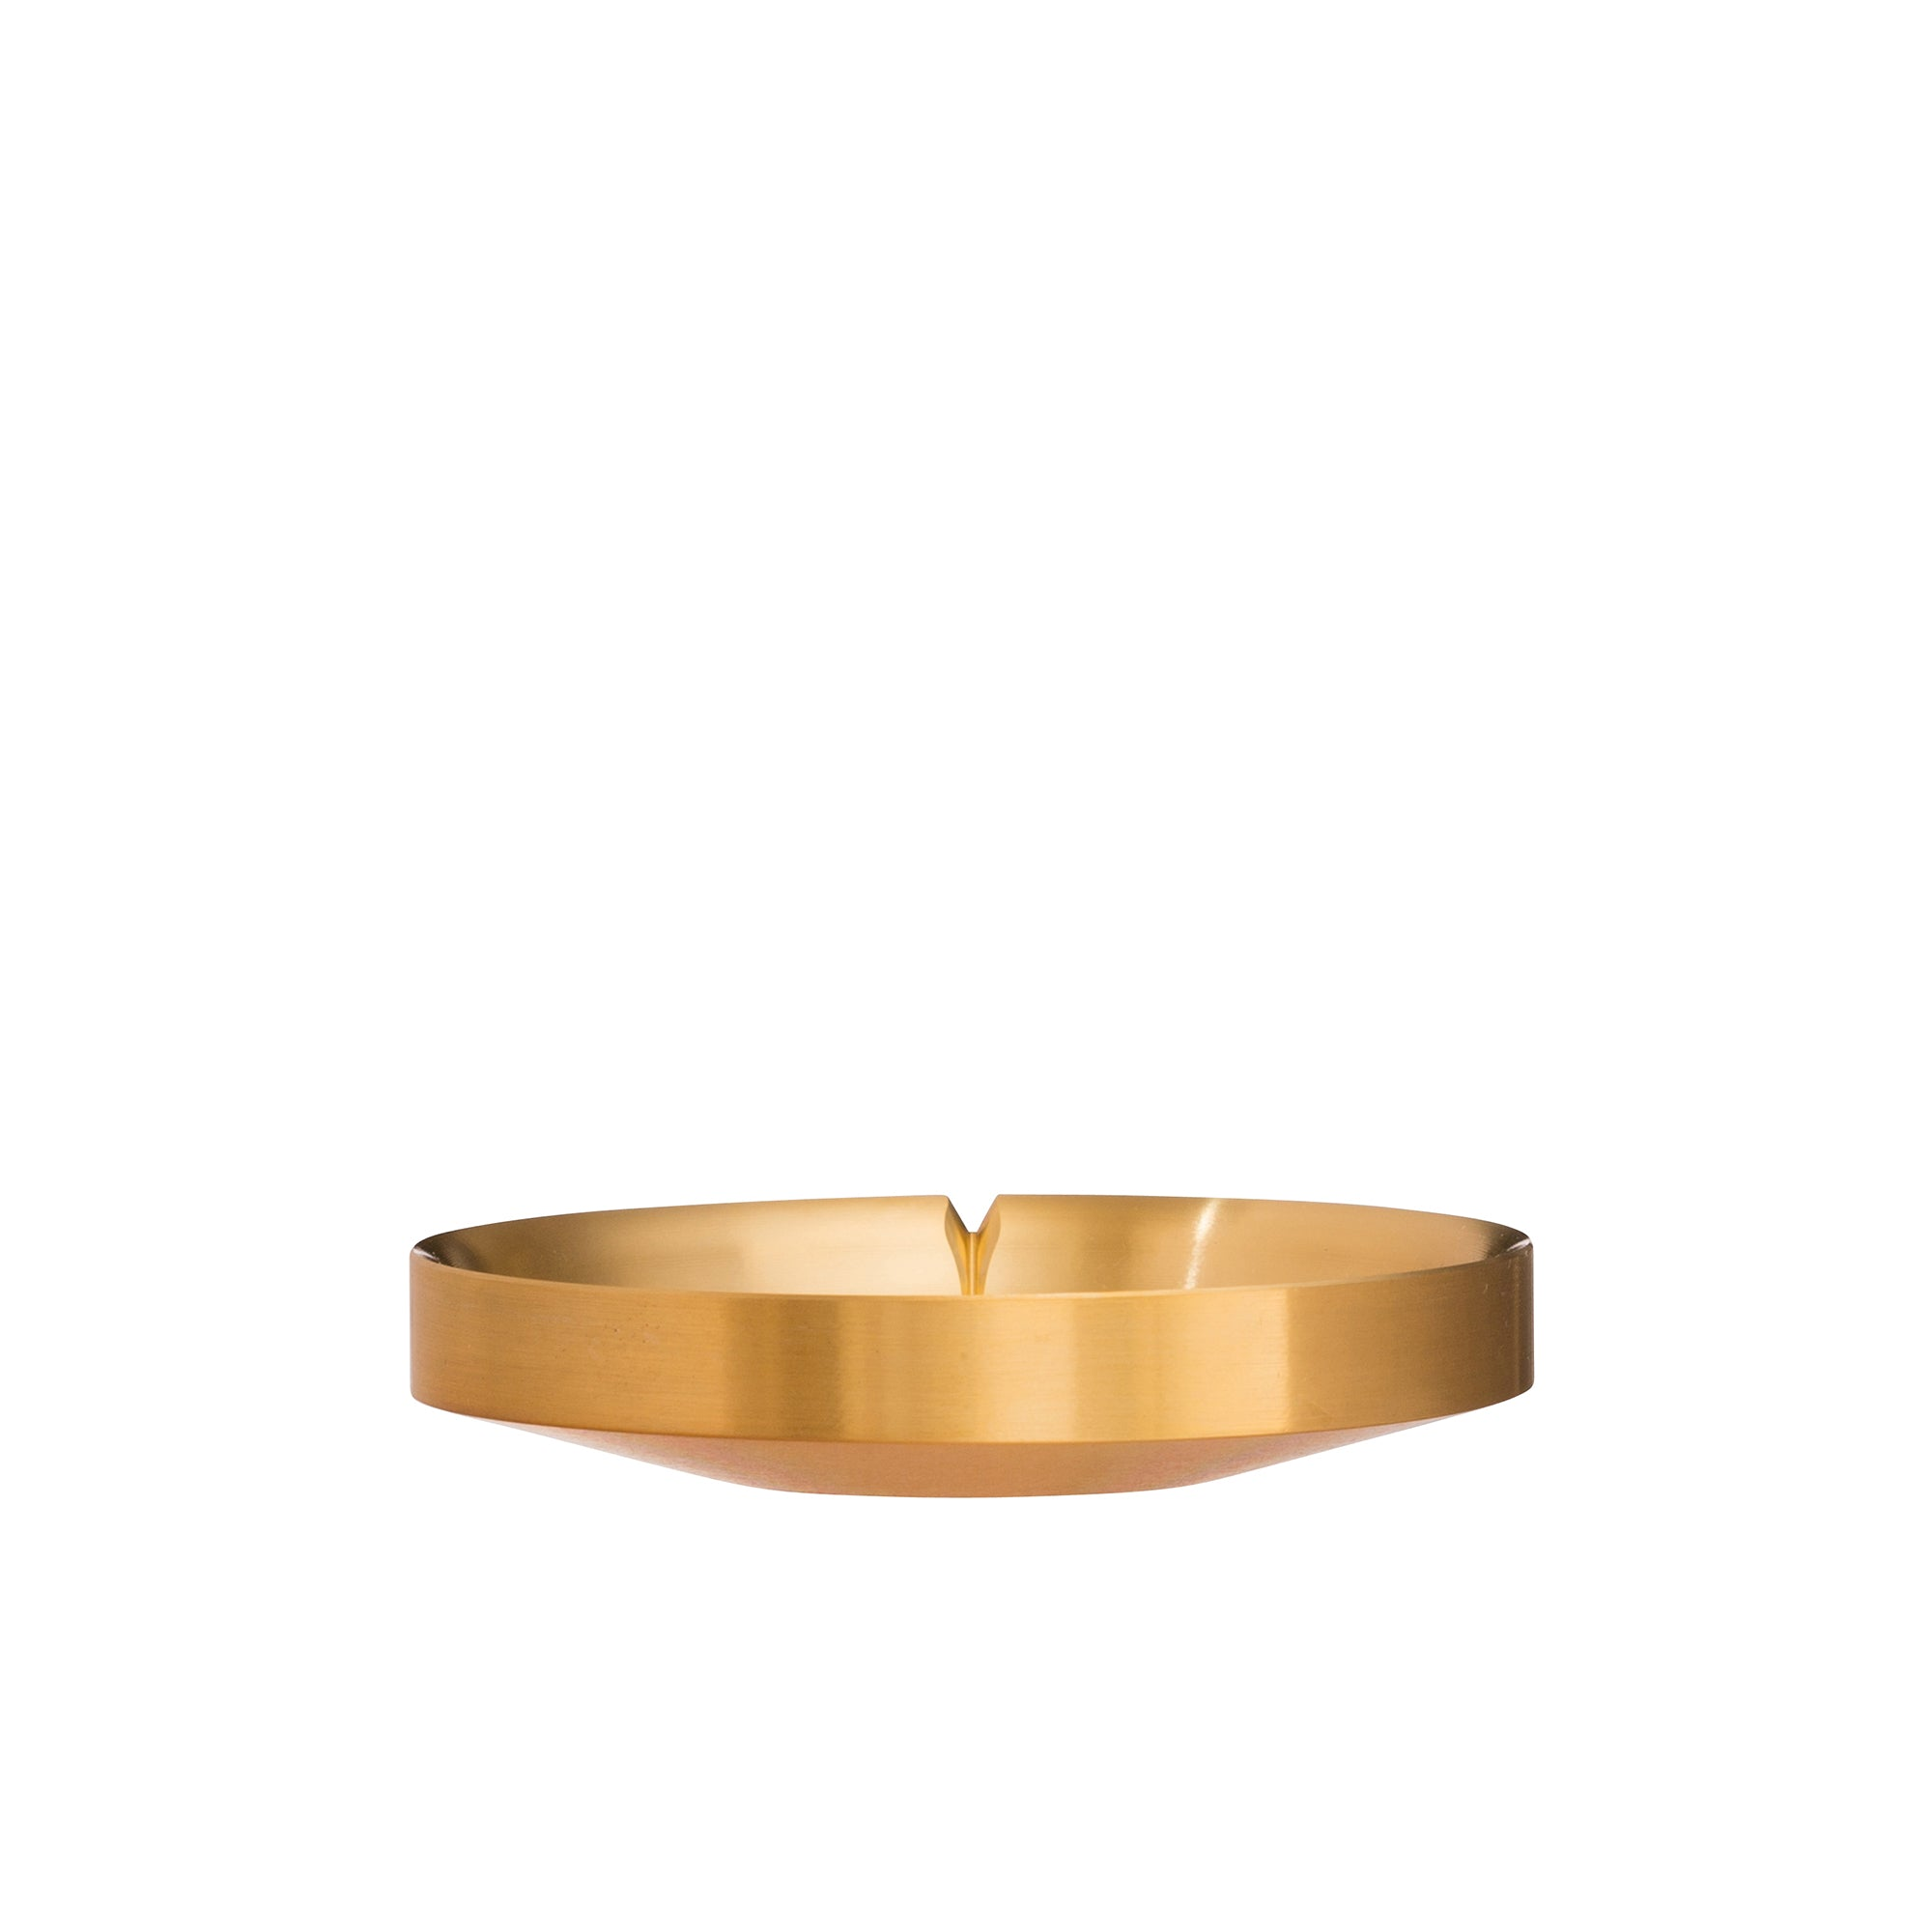 Natural Brass Agave Basin by Tennen for Broken English Jewelry